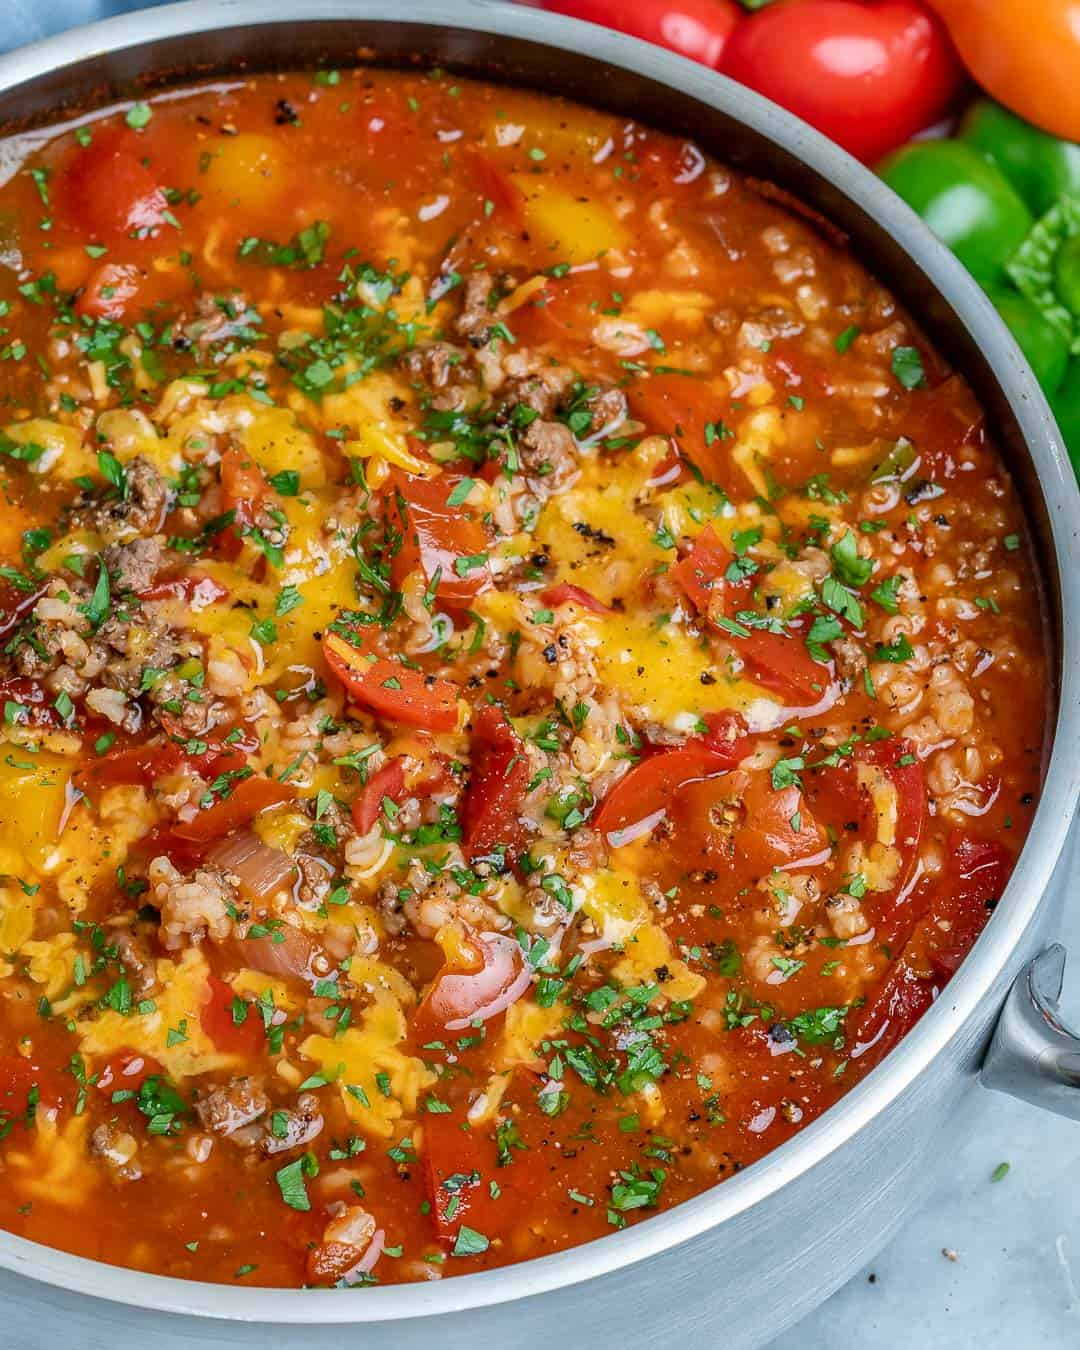 healthy soup recipe with beef and veggies